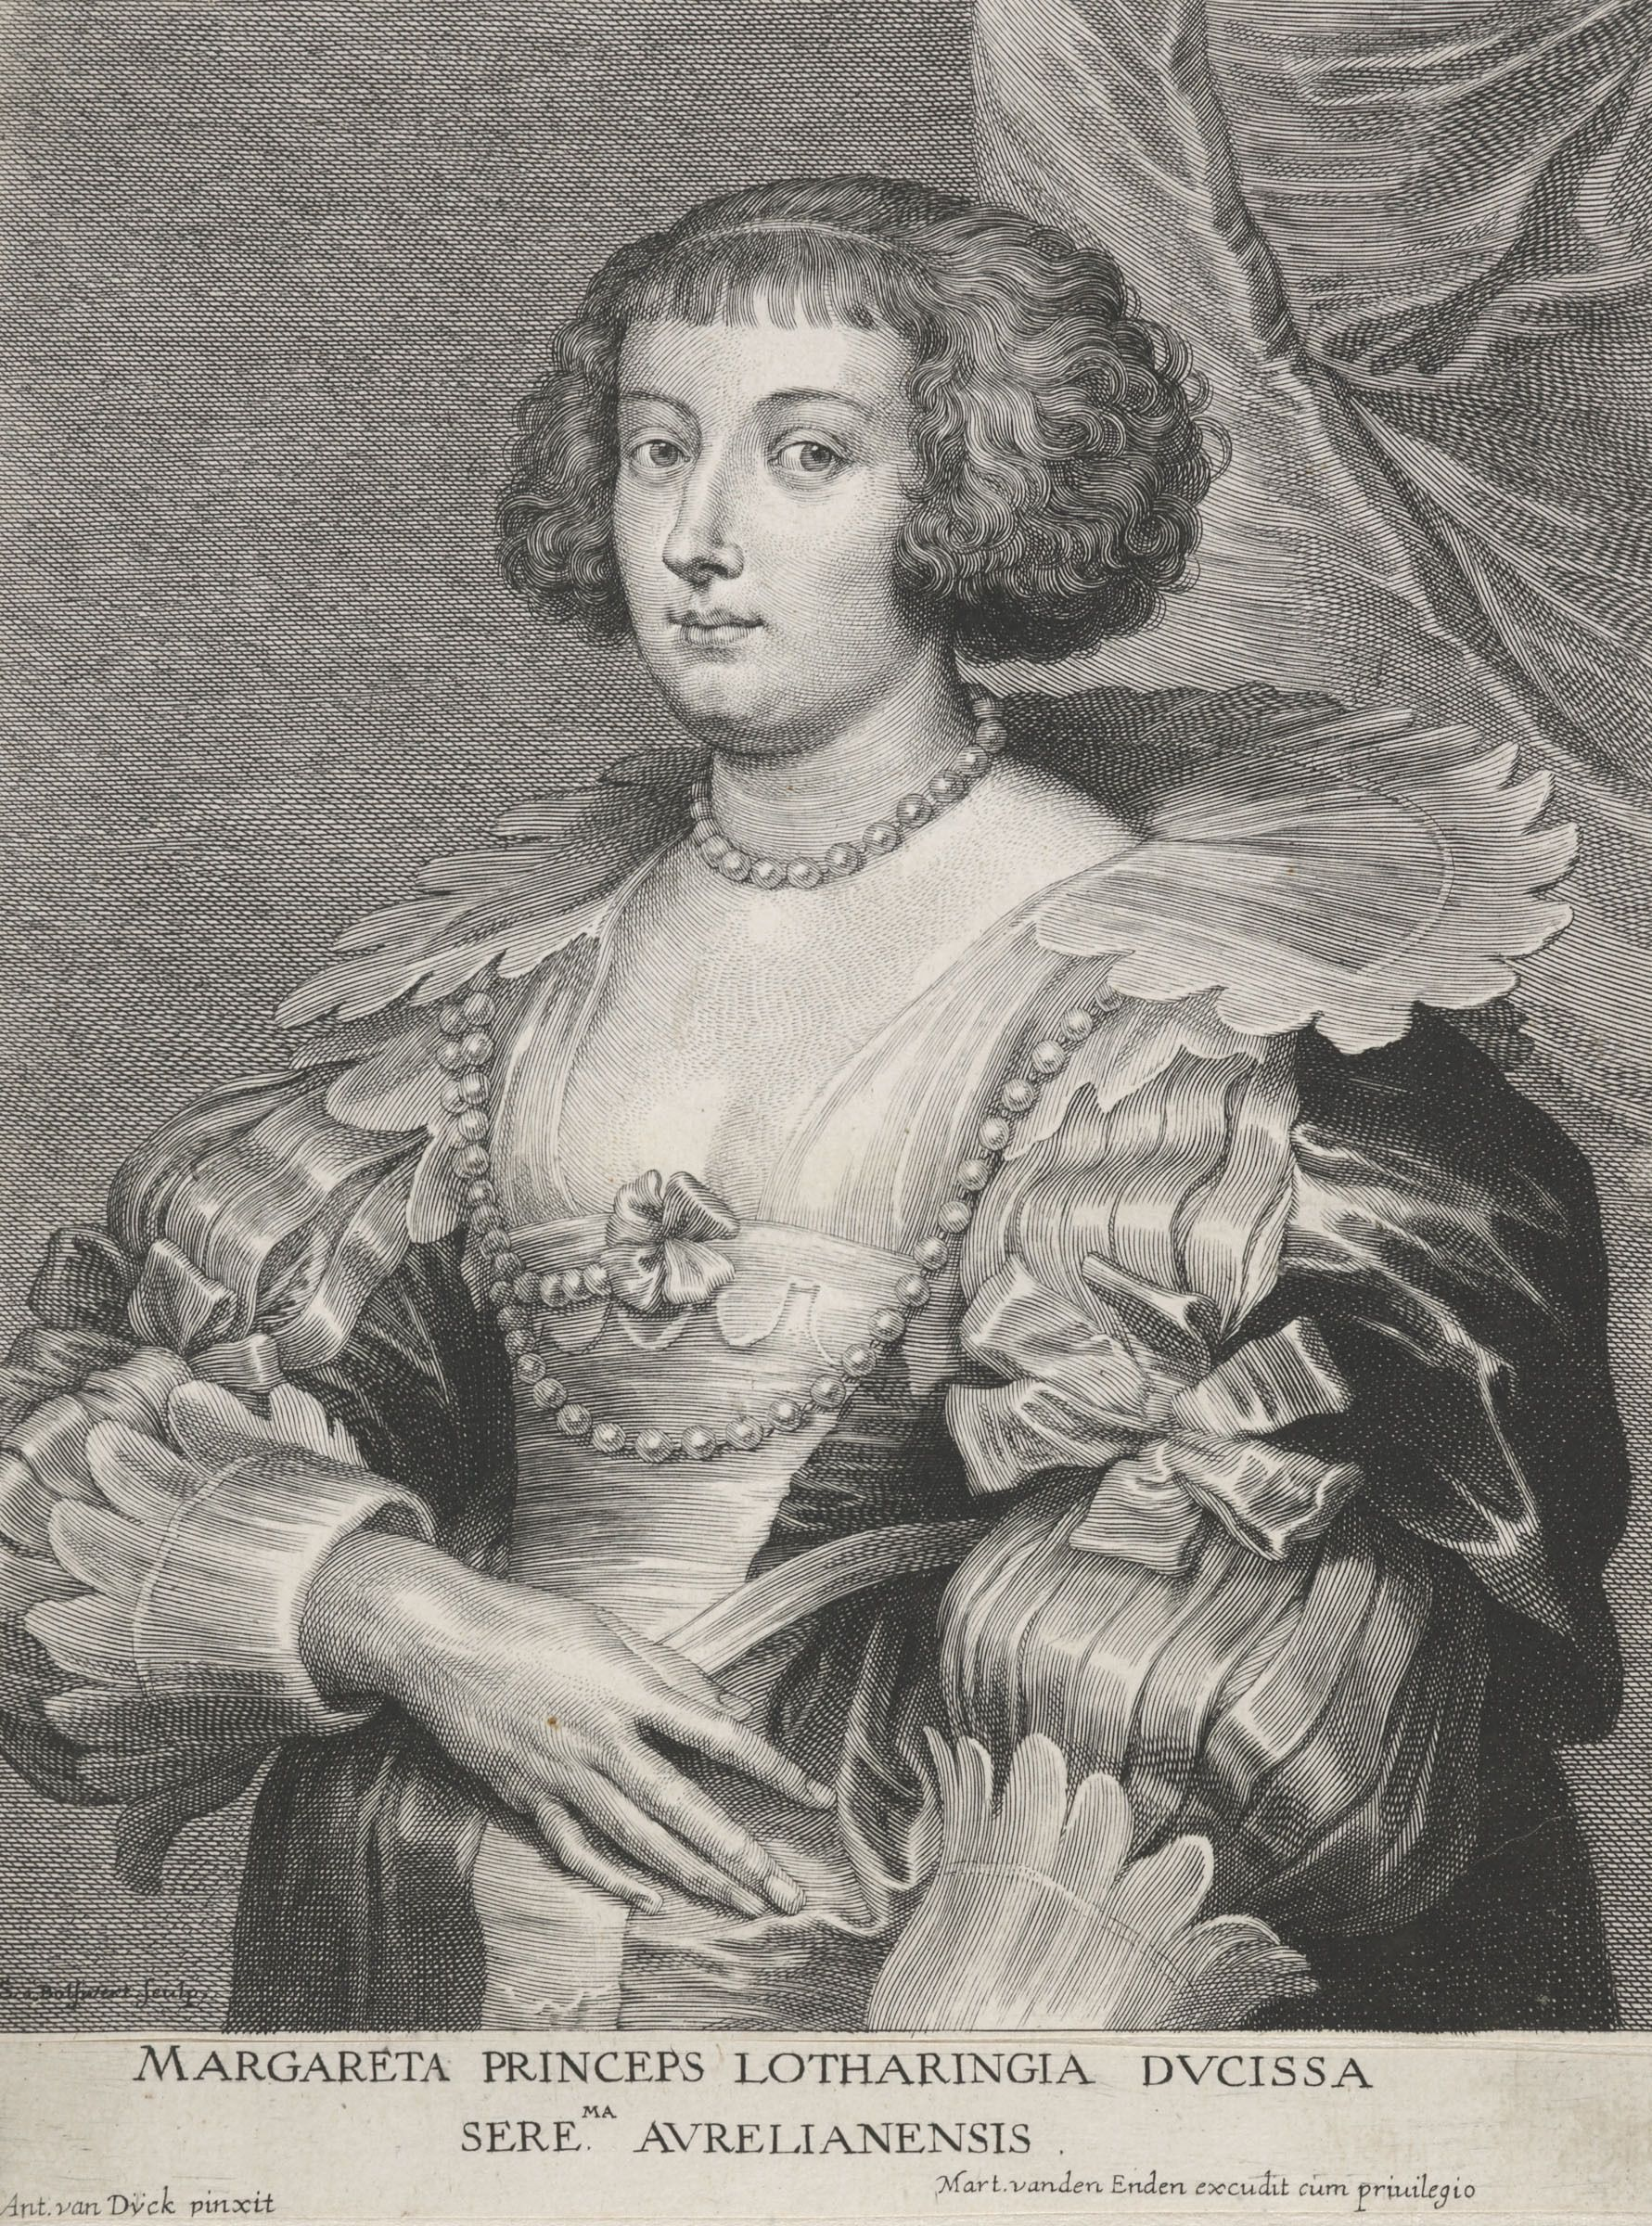 An etching of a lady in a very ornate dress